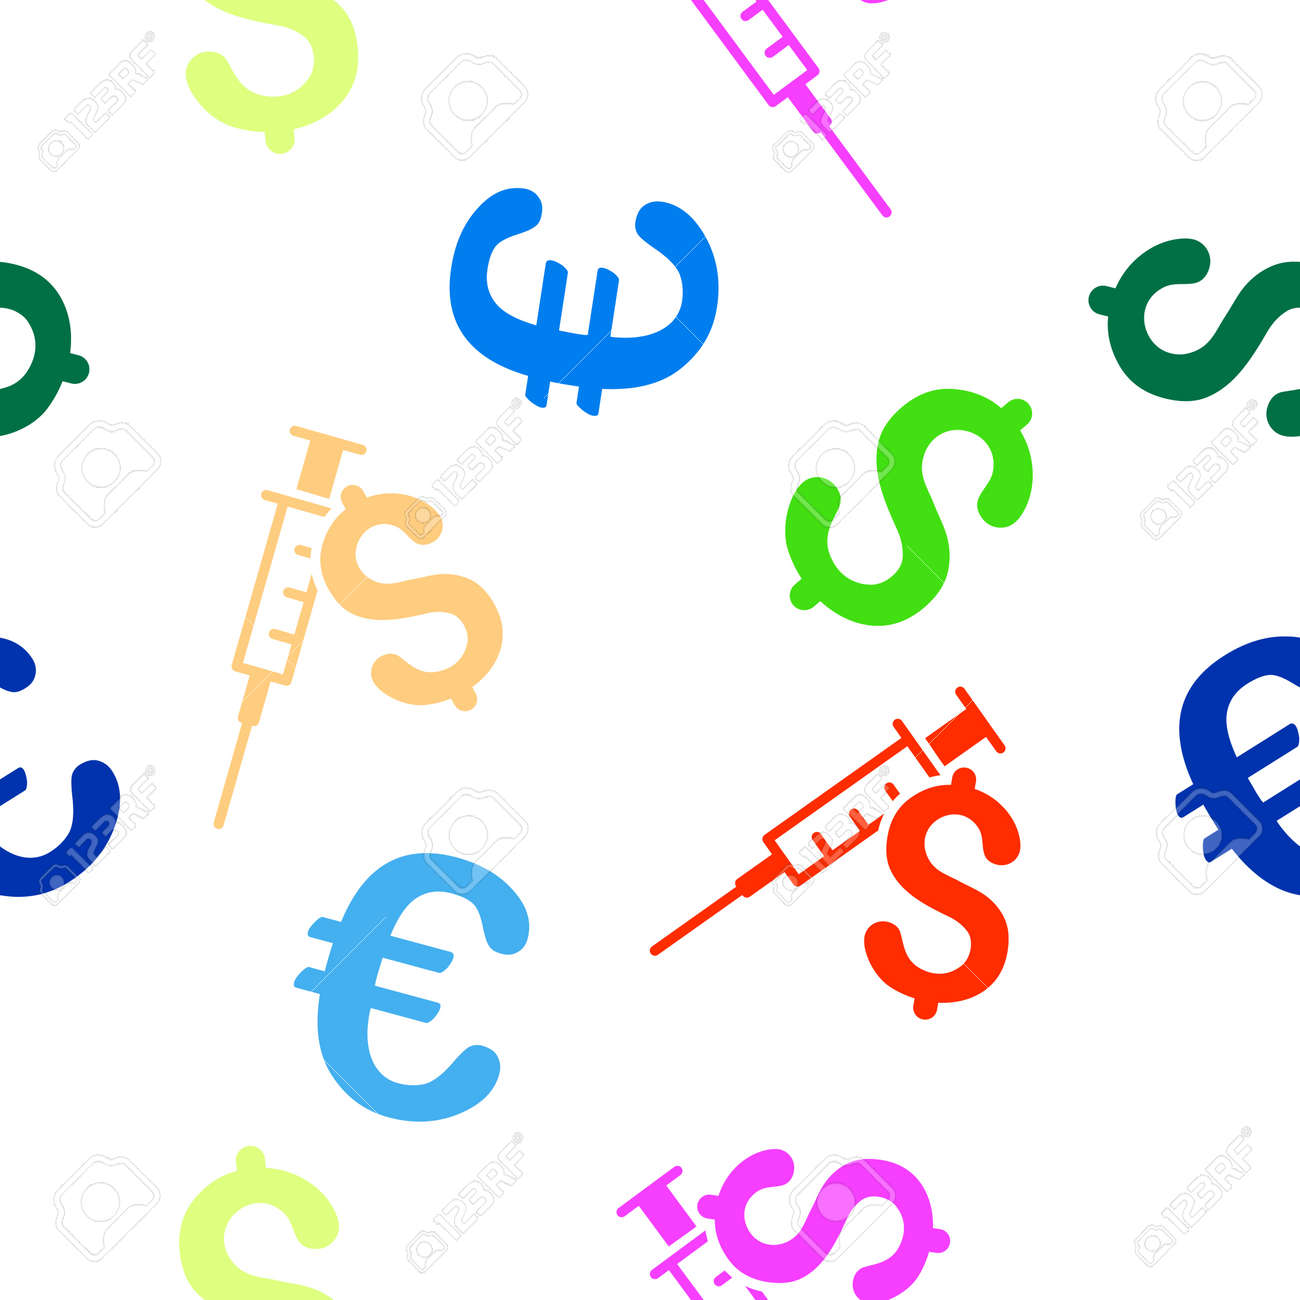 Drug Business Glyph Repeatable Pattern With Dollar And Euro Currency